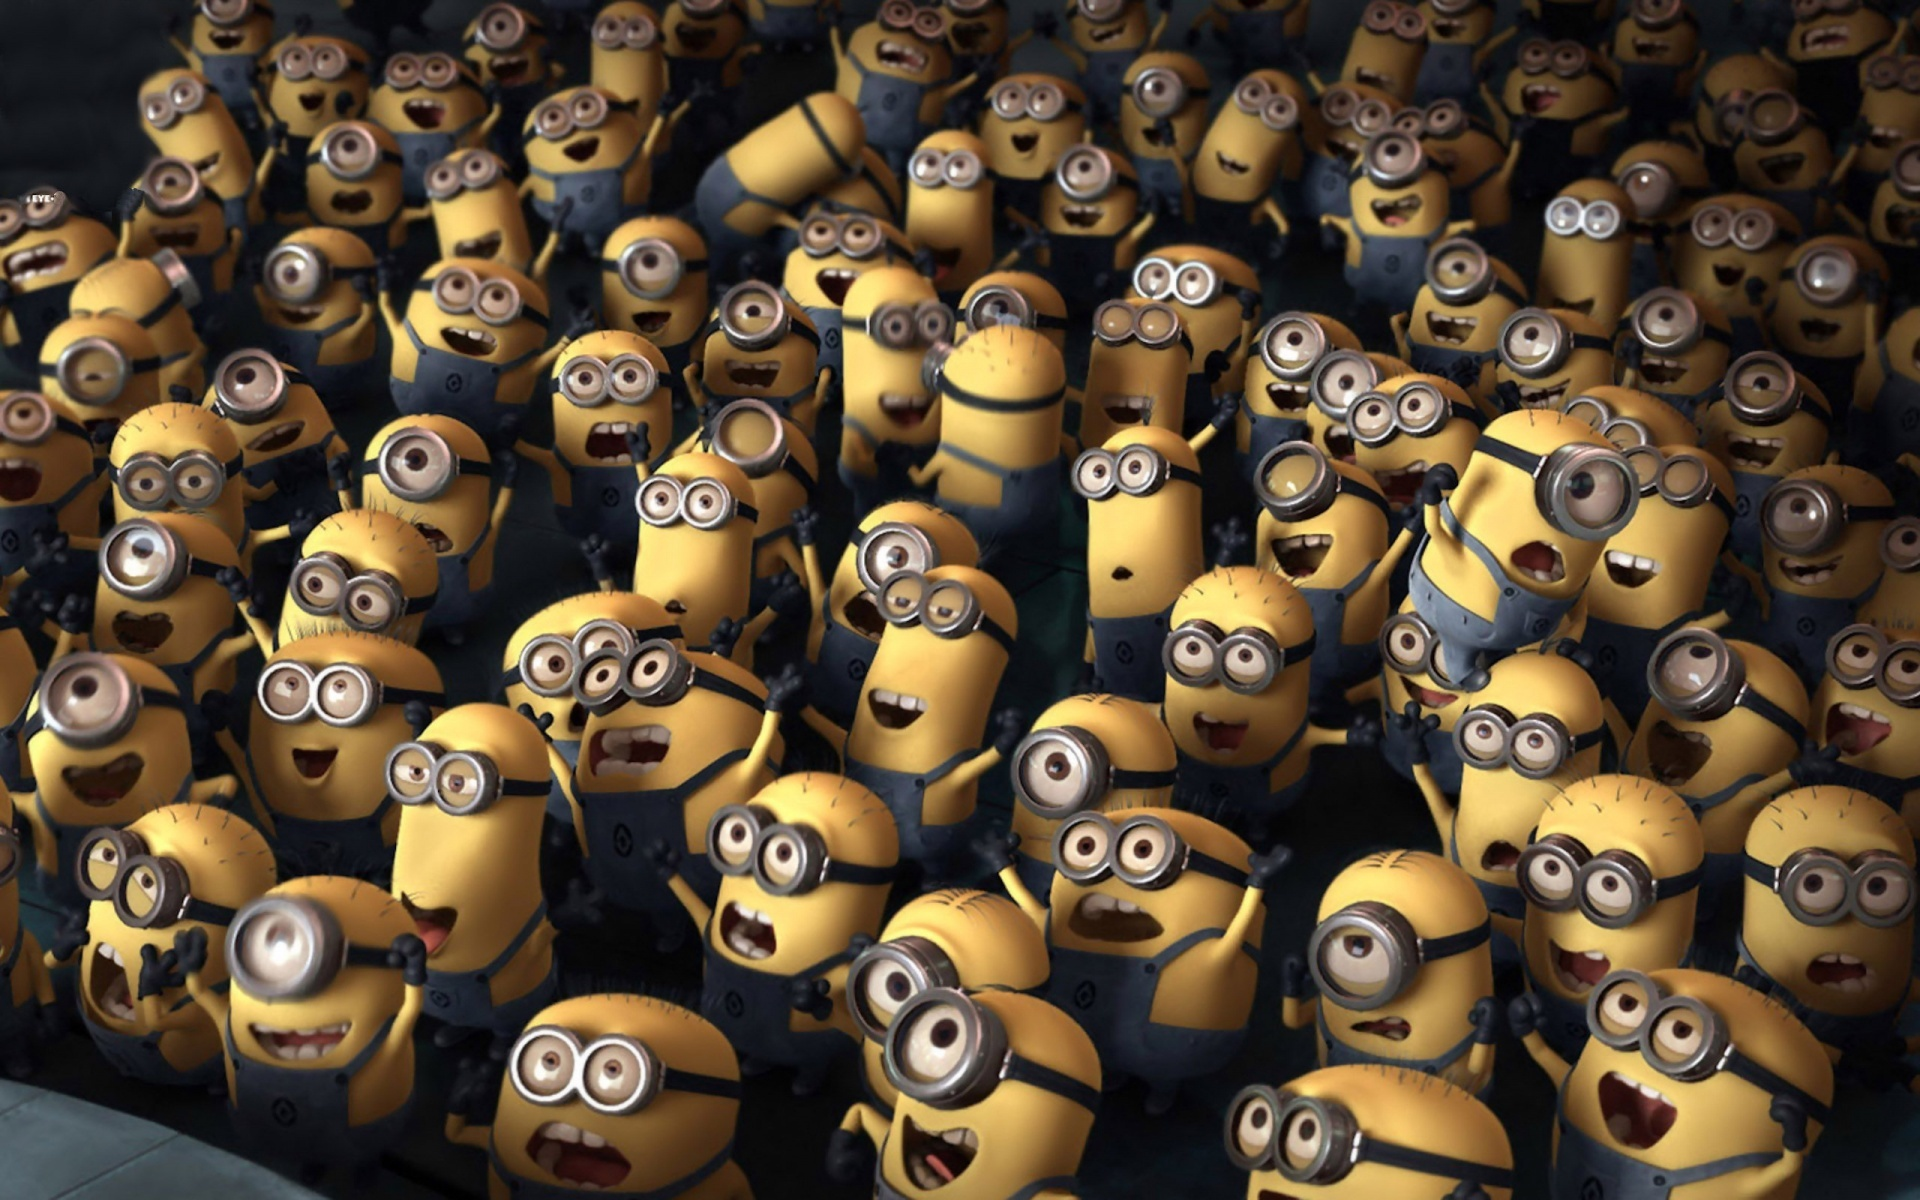 Despicable me 2 full hd wallpaper and background image 2880x1800 movie despicable me 2 wallpaper voltagebd Gallery